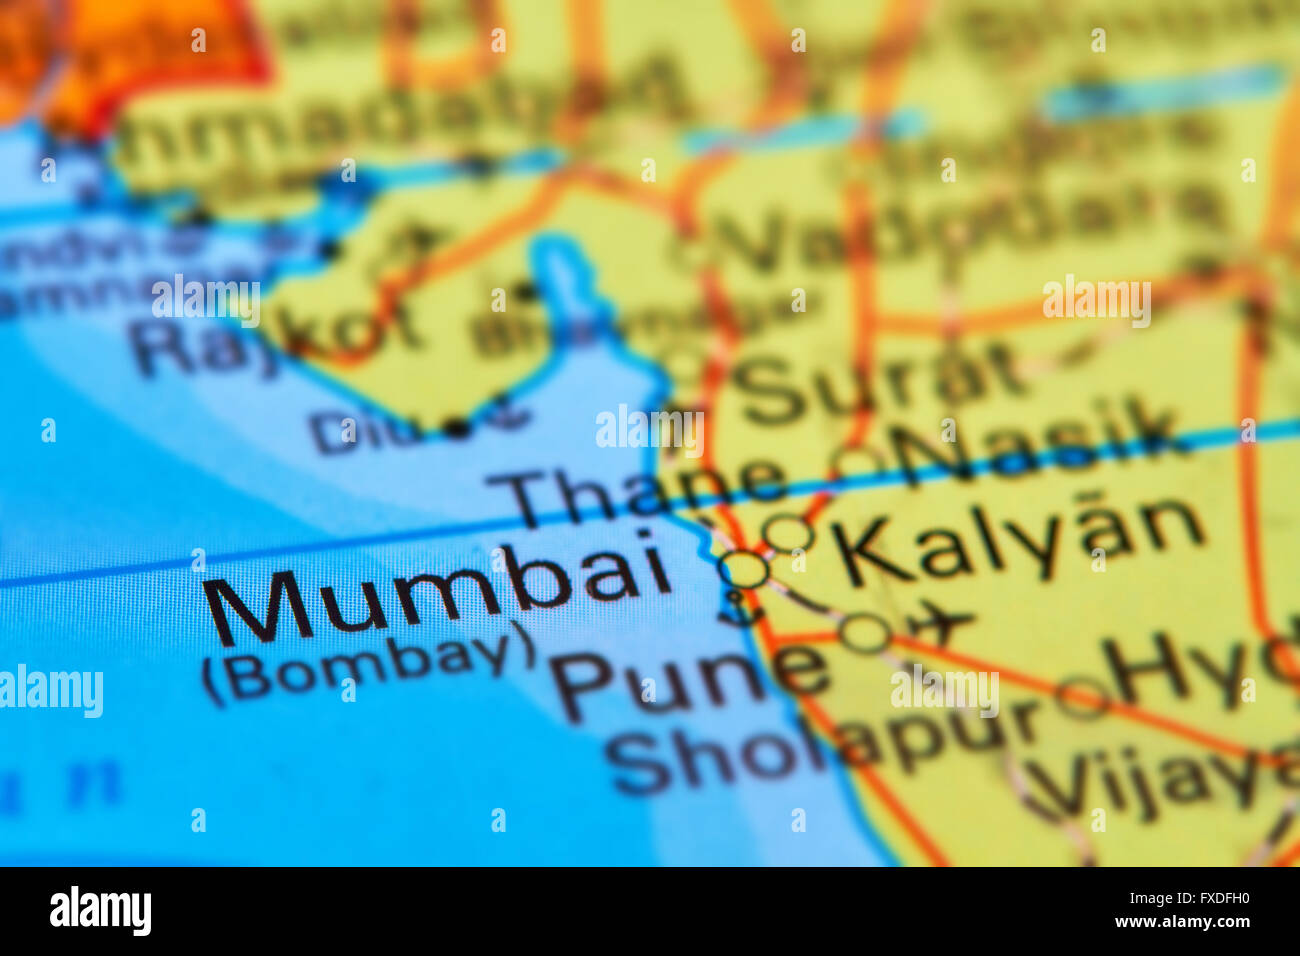 Mumbai bombay city in india asia on the world map stock photo mumbai bombay city in india asia on the world map gumiabroncs Image collections